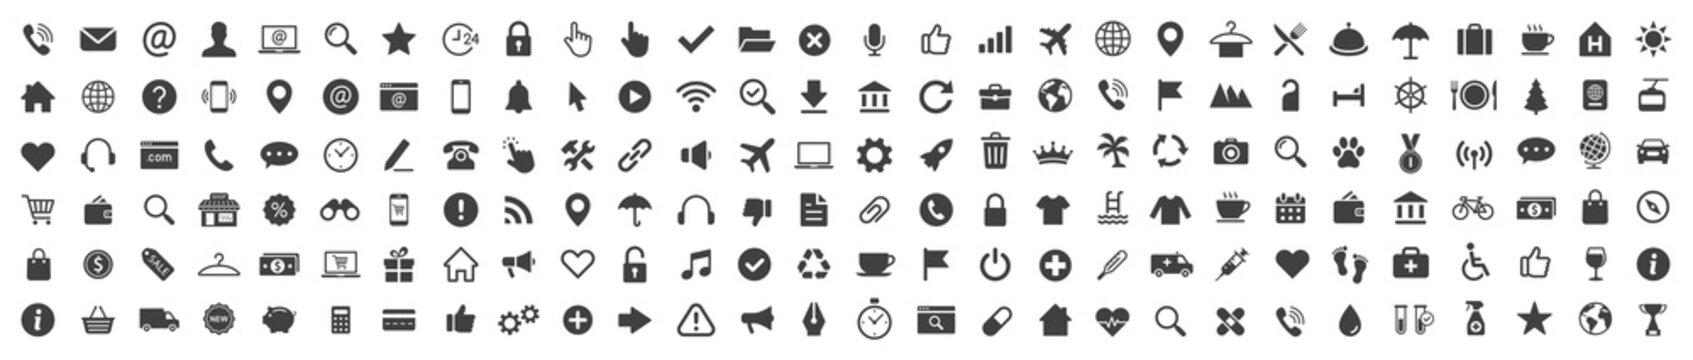 Icons set. Business Shopping Finance Tourism Web icon. Vector